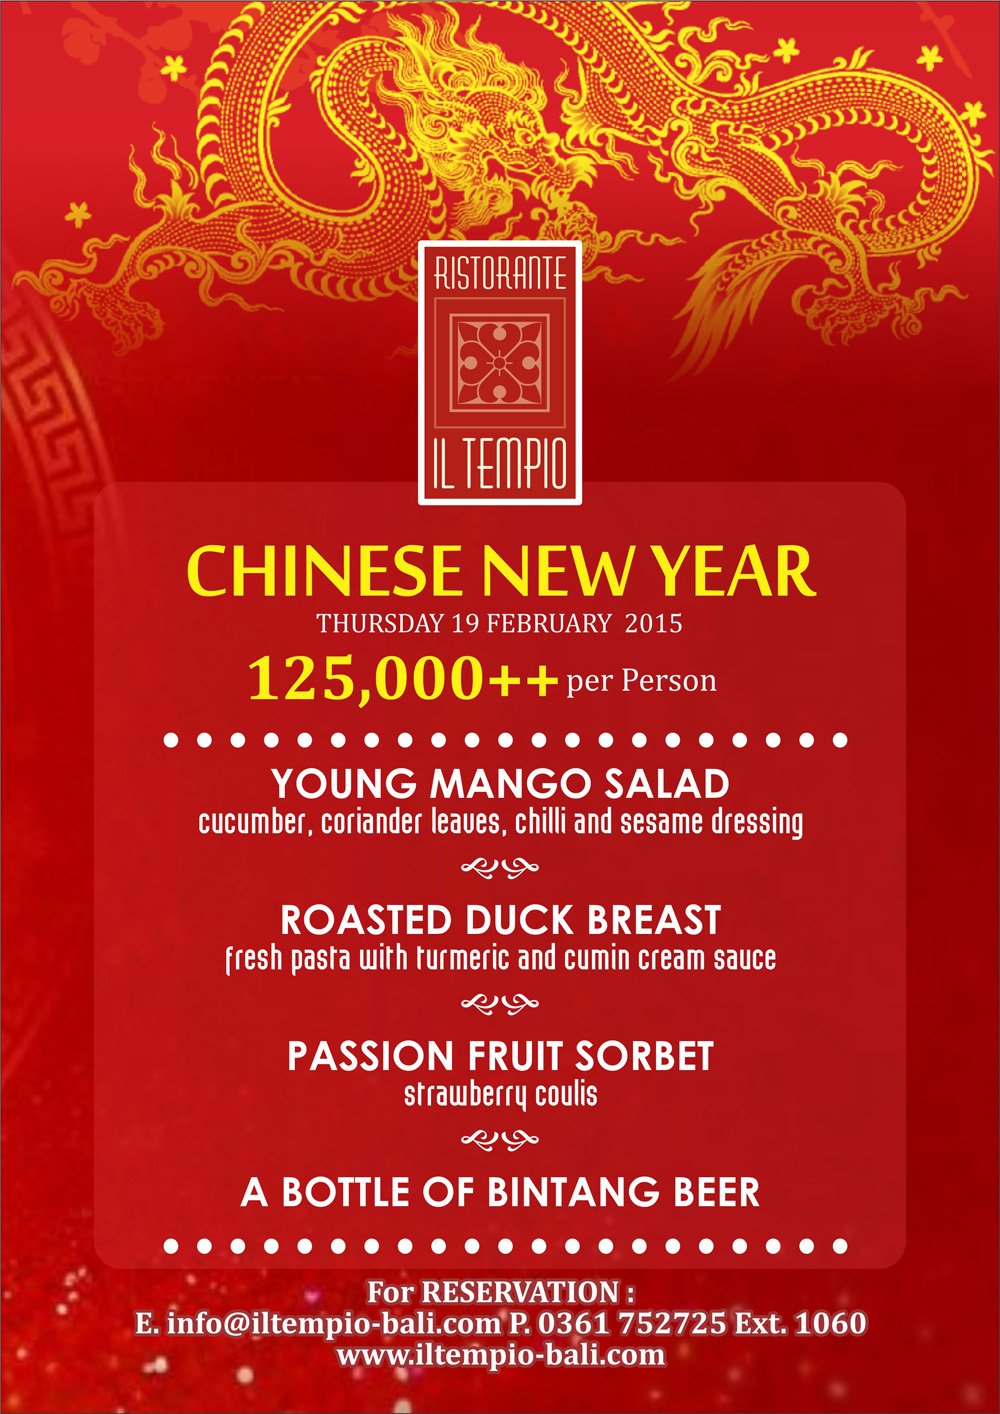 IL TEMPIO SPECIAL MENU FOR CHINESE NEW YEAR! - Bali Garden Beach ...